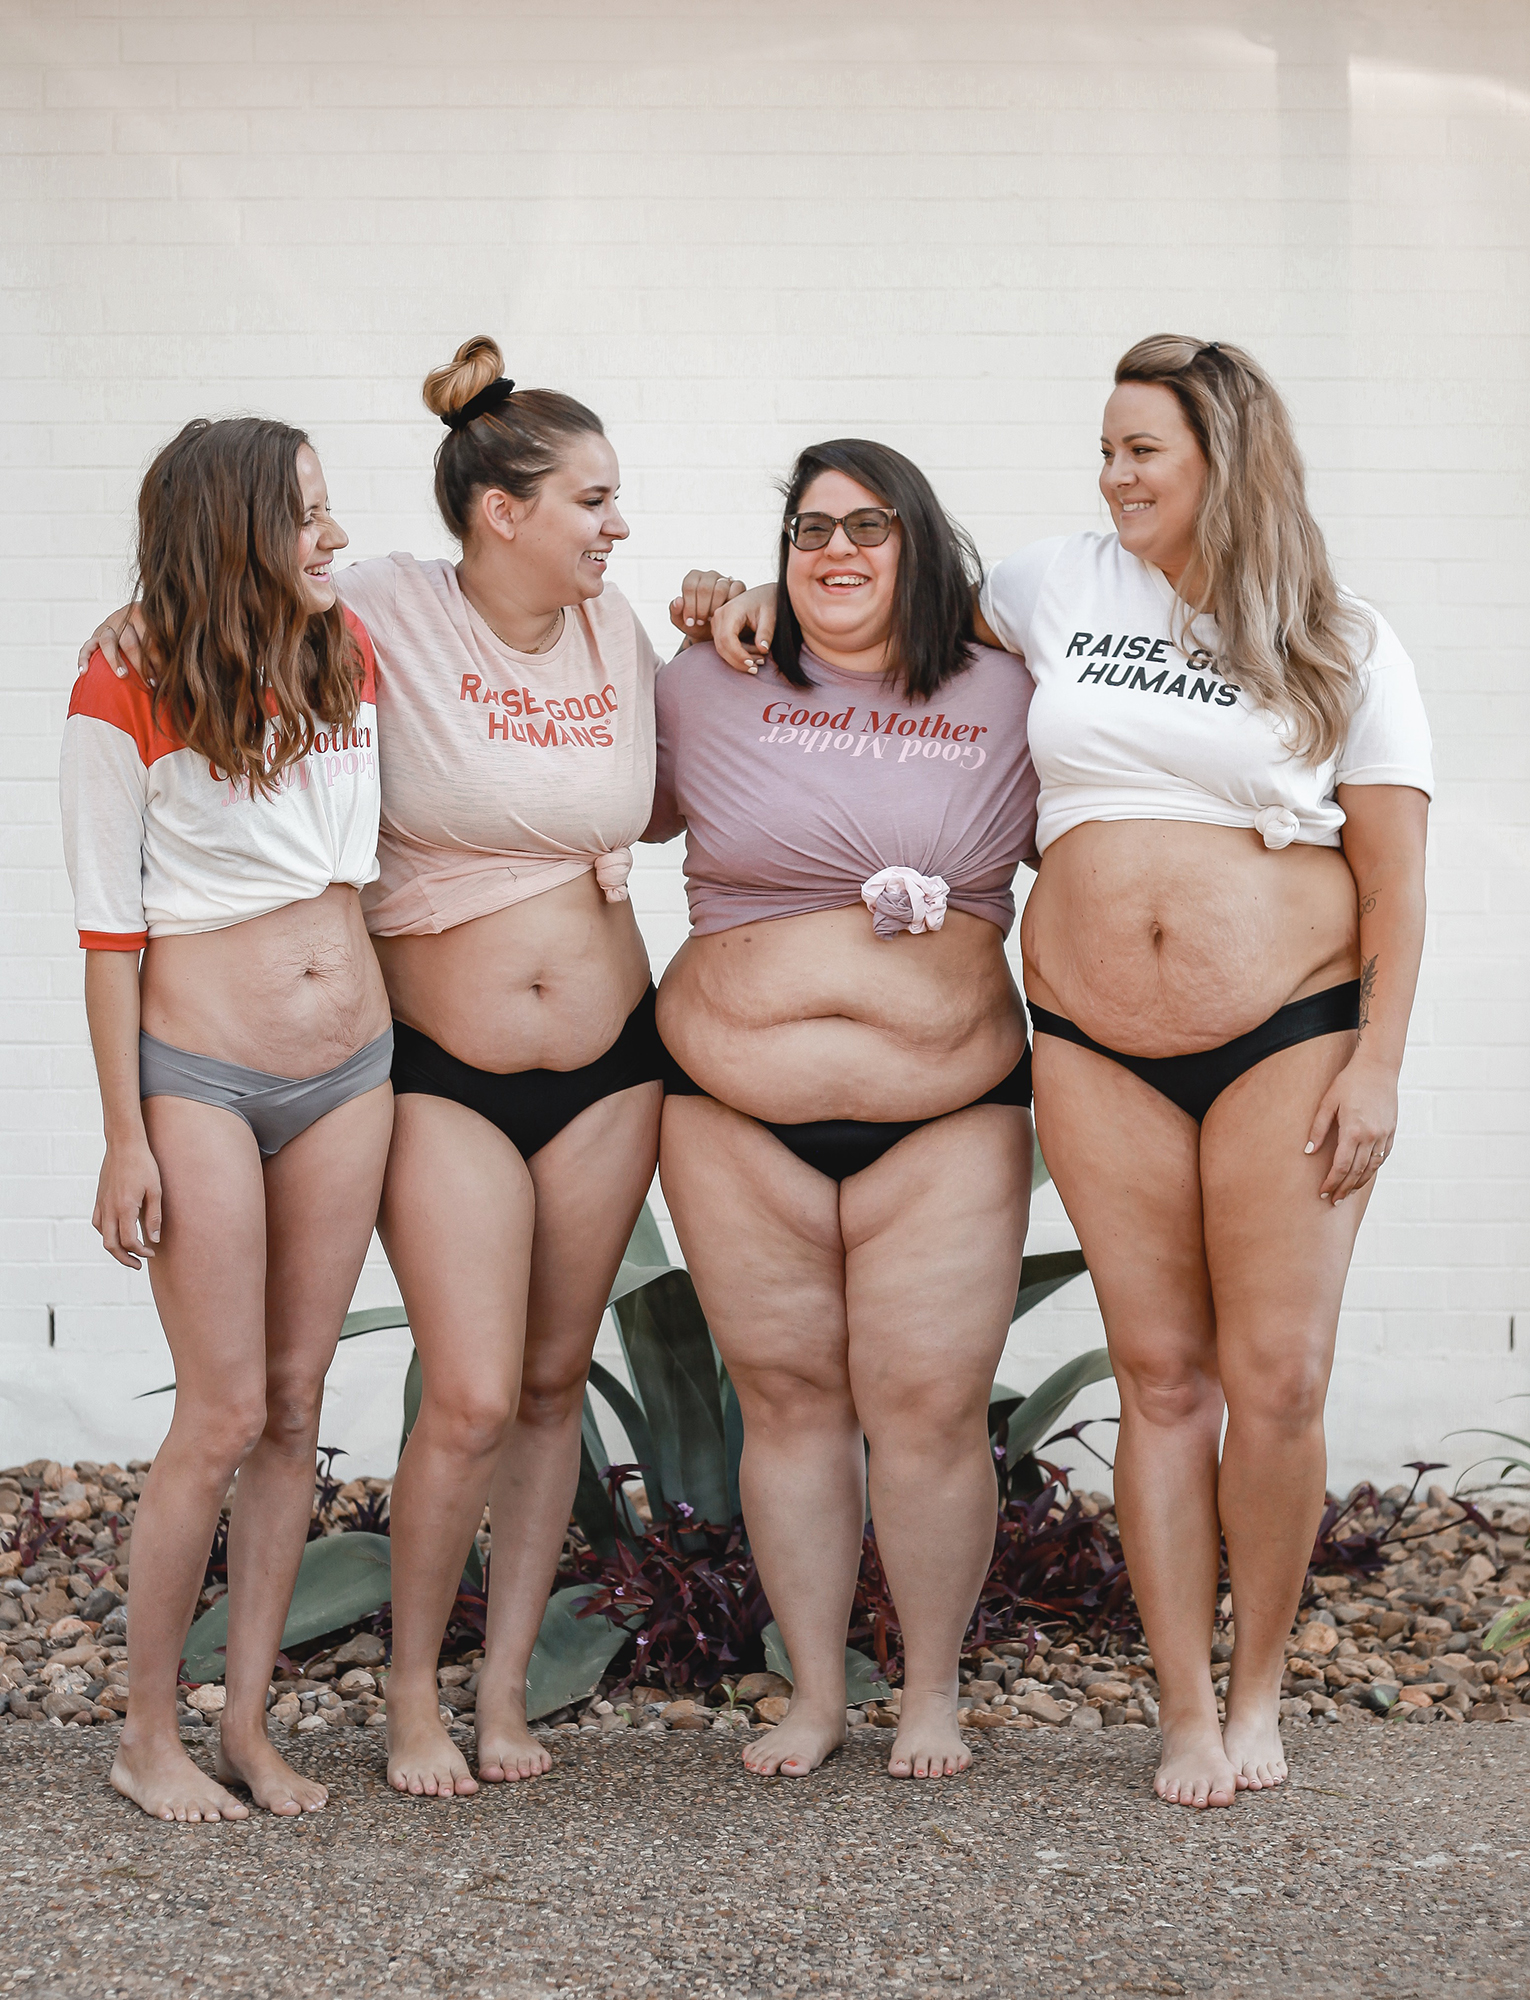 4 Moms Show Off Their Postpartum Bodies In Photo If It -5809